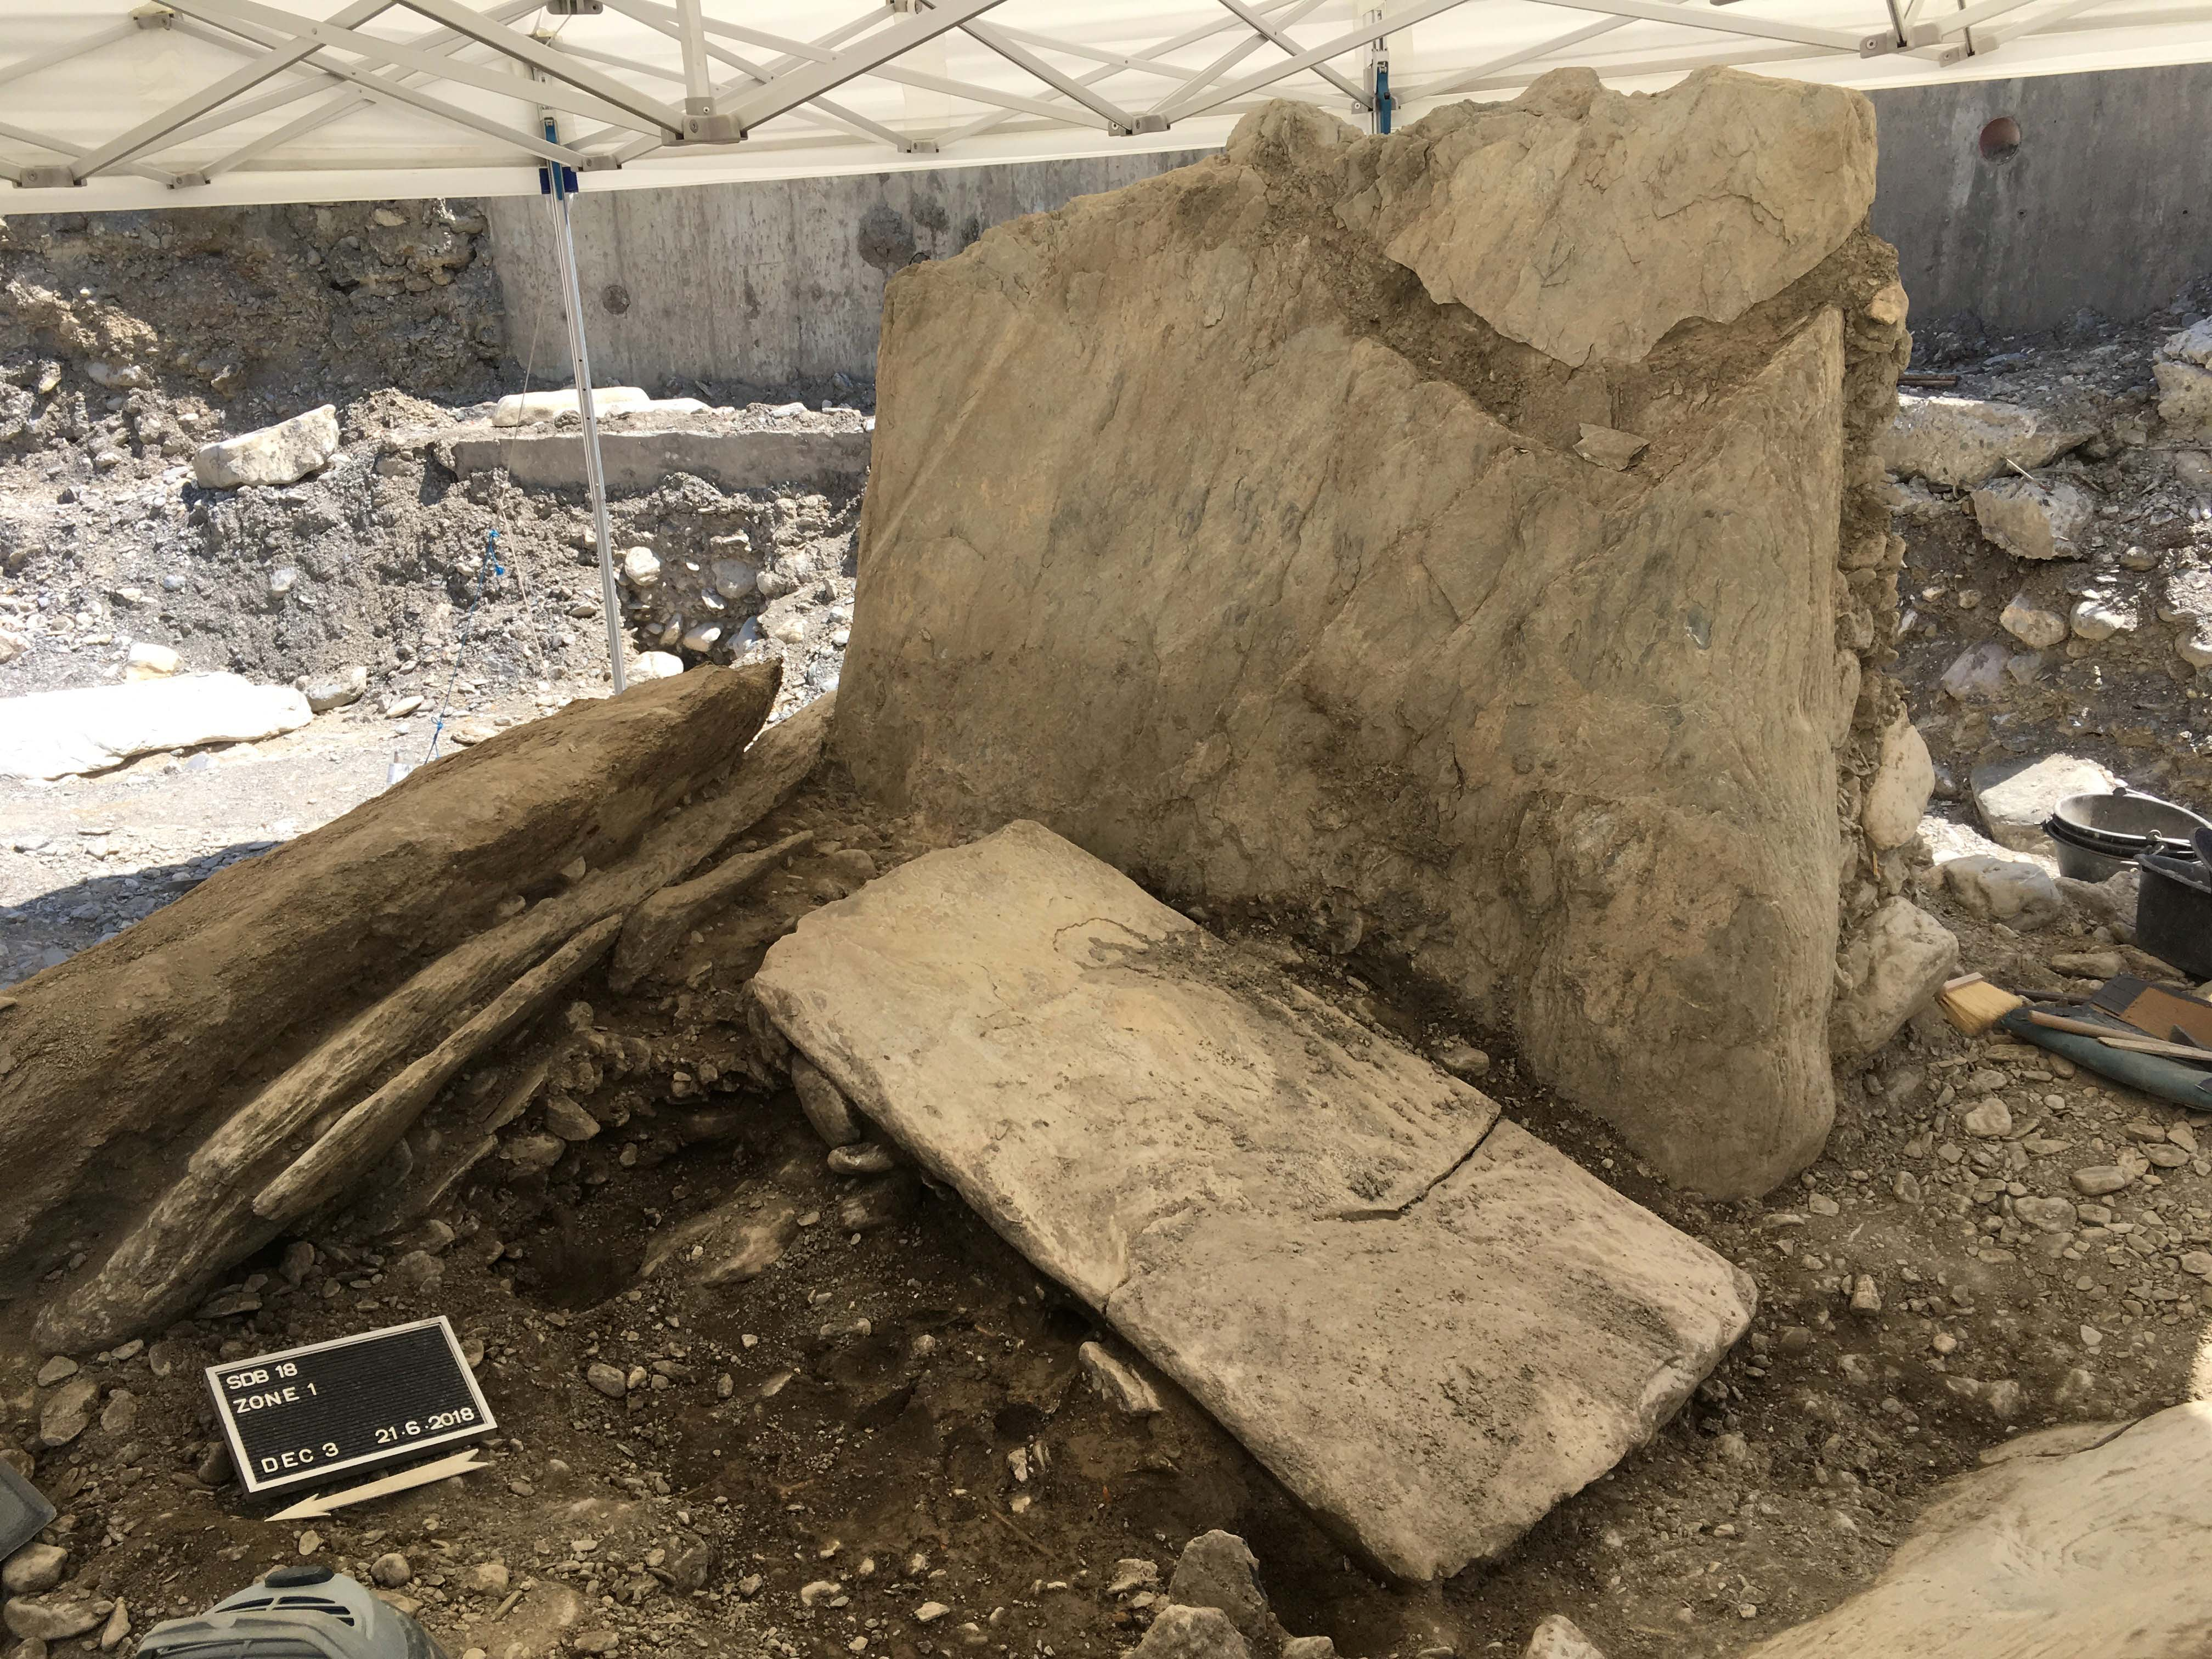 Le dolmen de Don Bosco en cours de dégagement à Sion (VS).